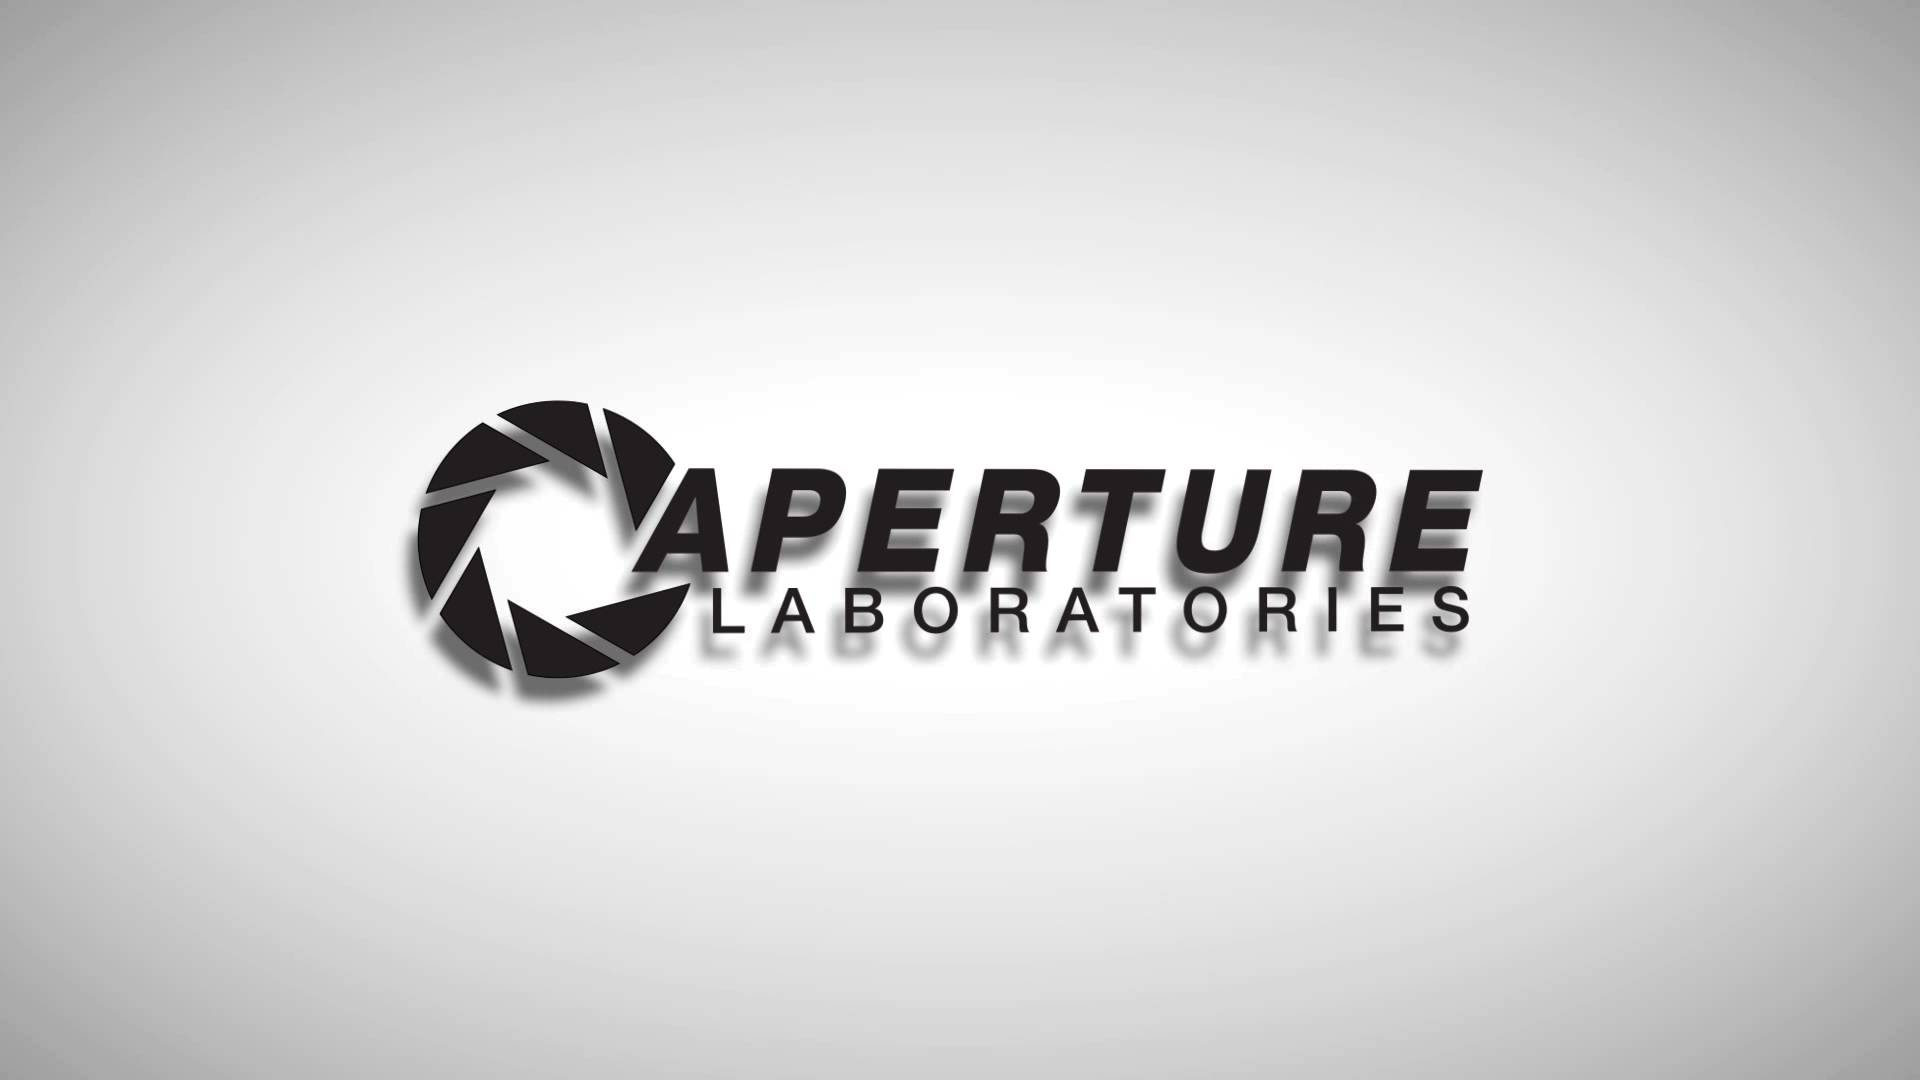 Aperture Science Wallpaper HD - WallpaperSafariAperture Science Innovators Wallpaper